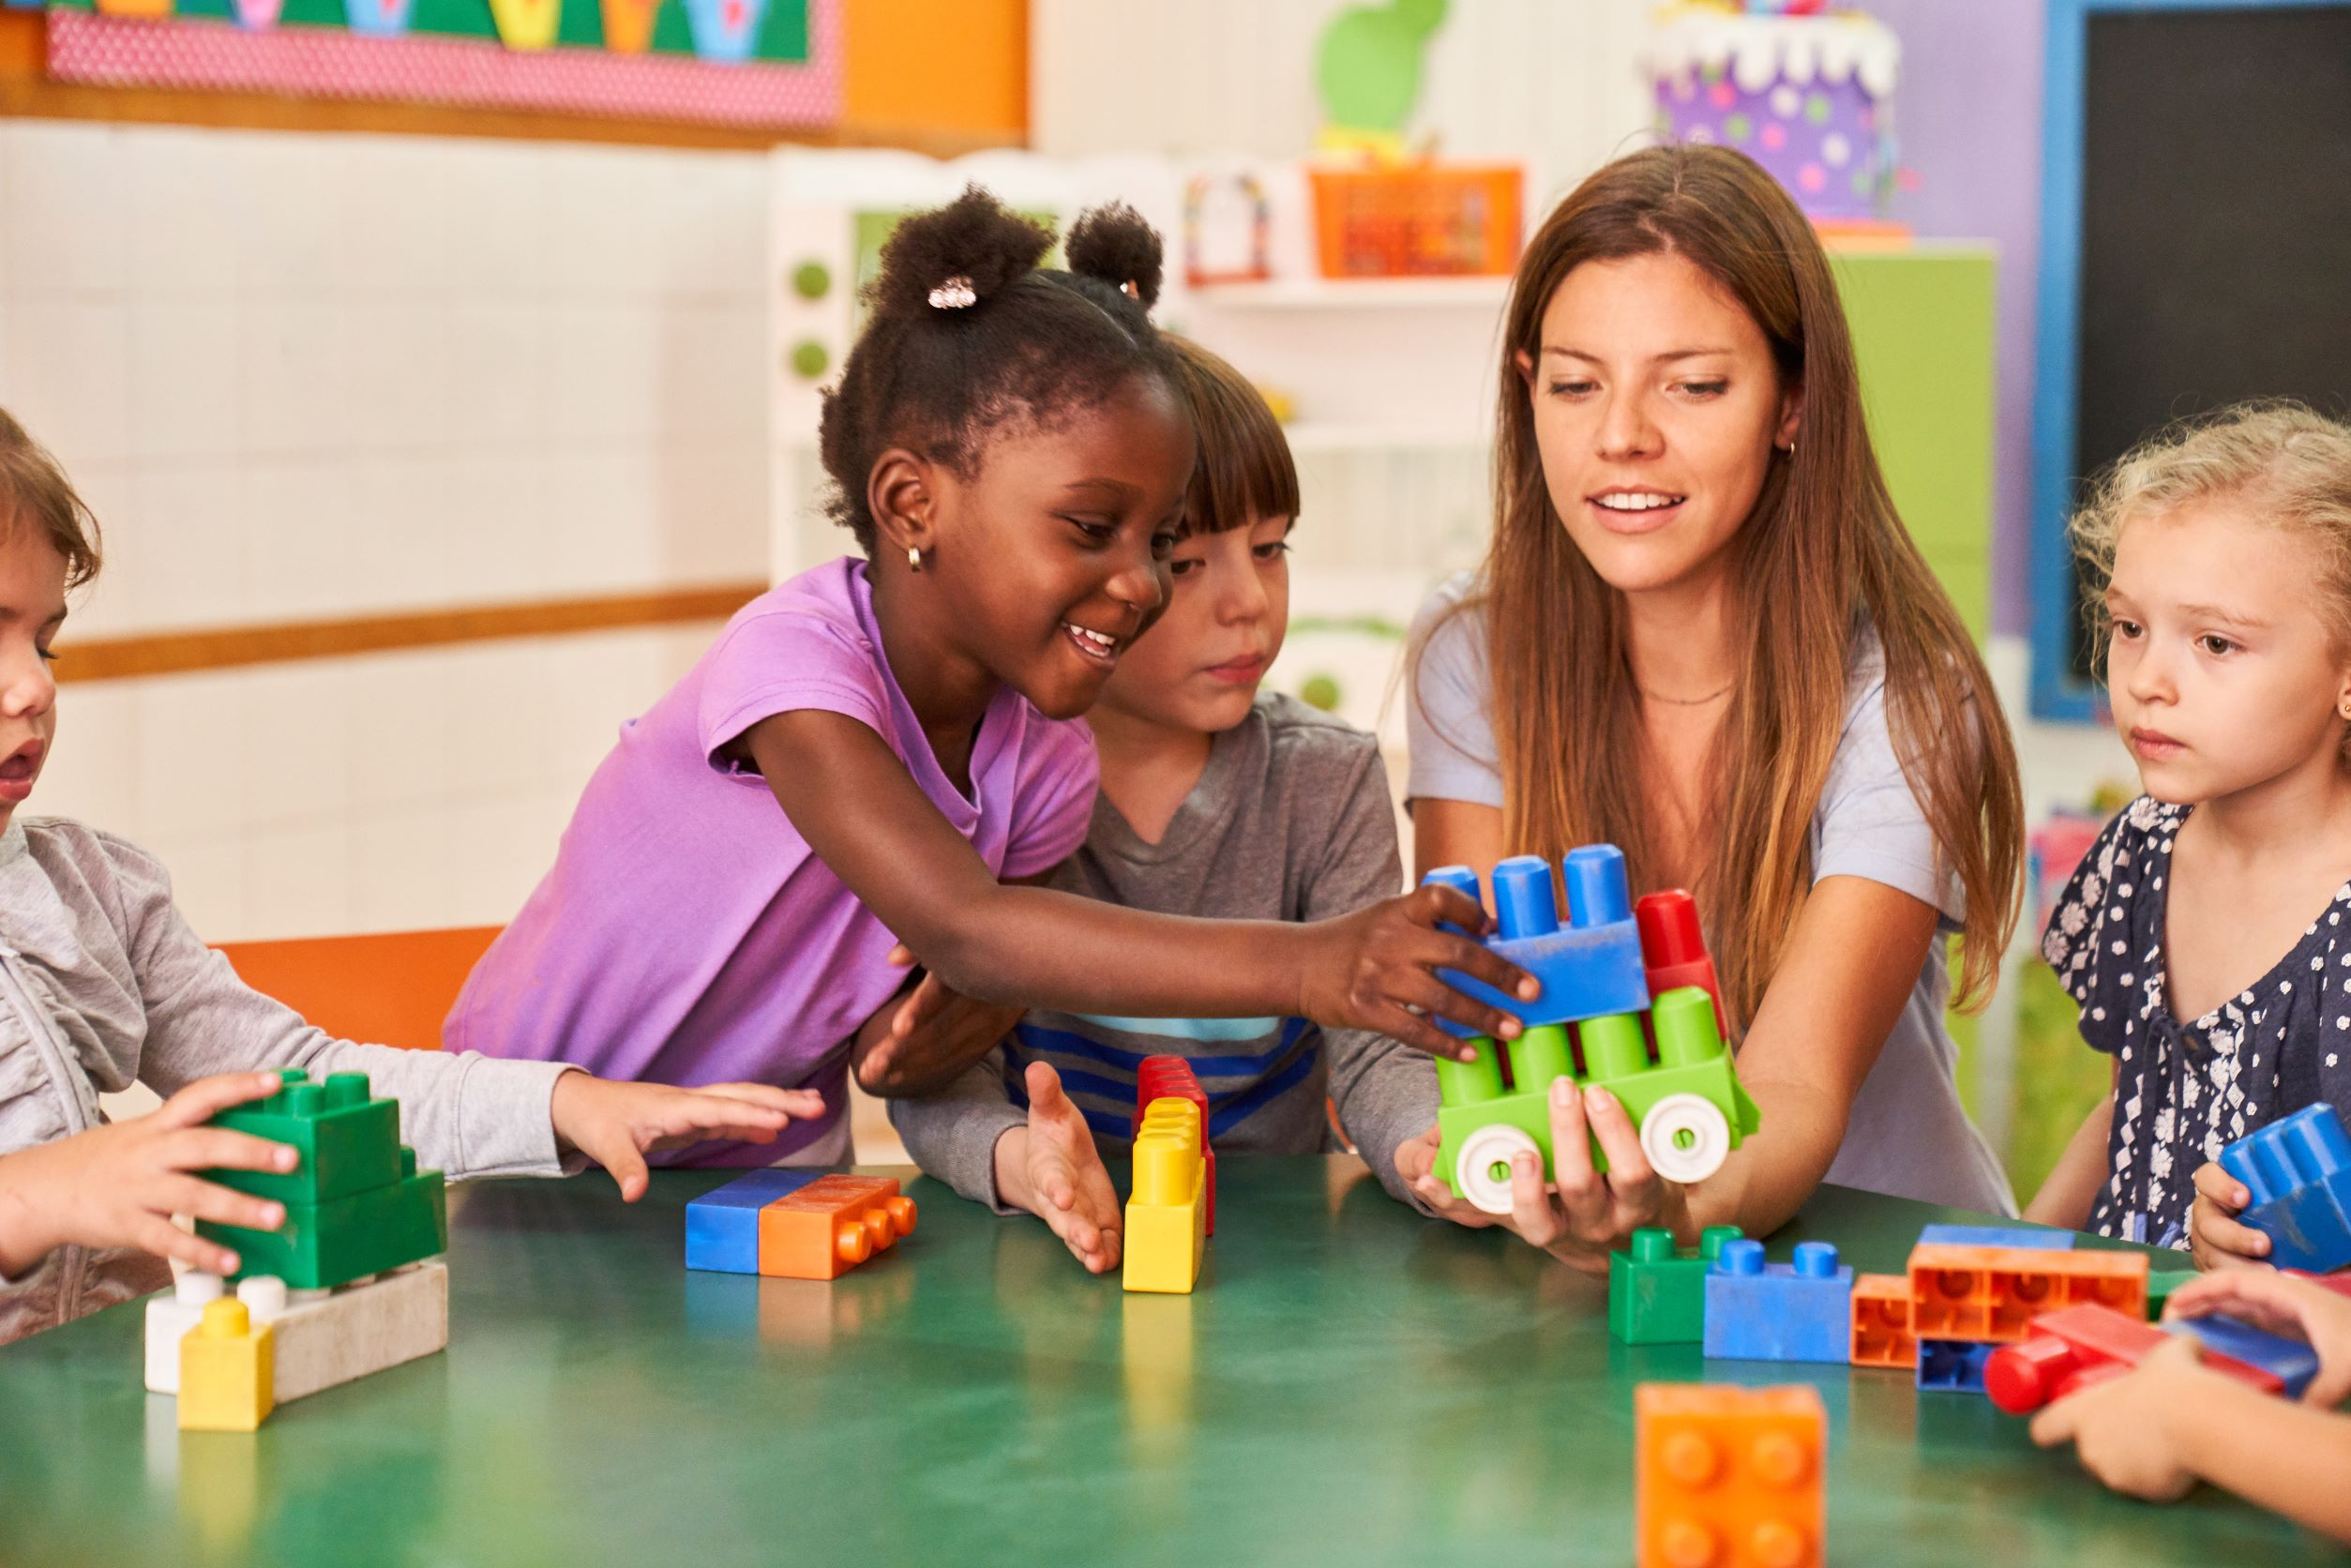 Children play in a daycare